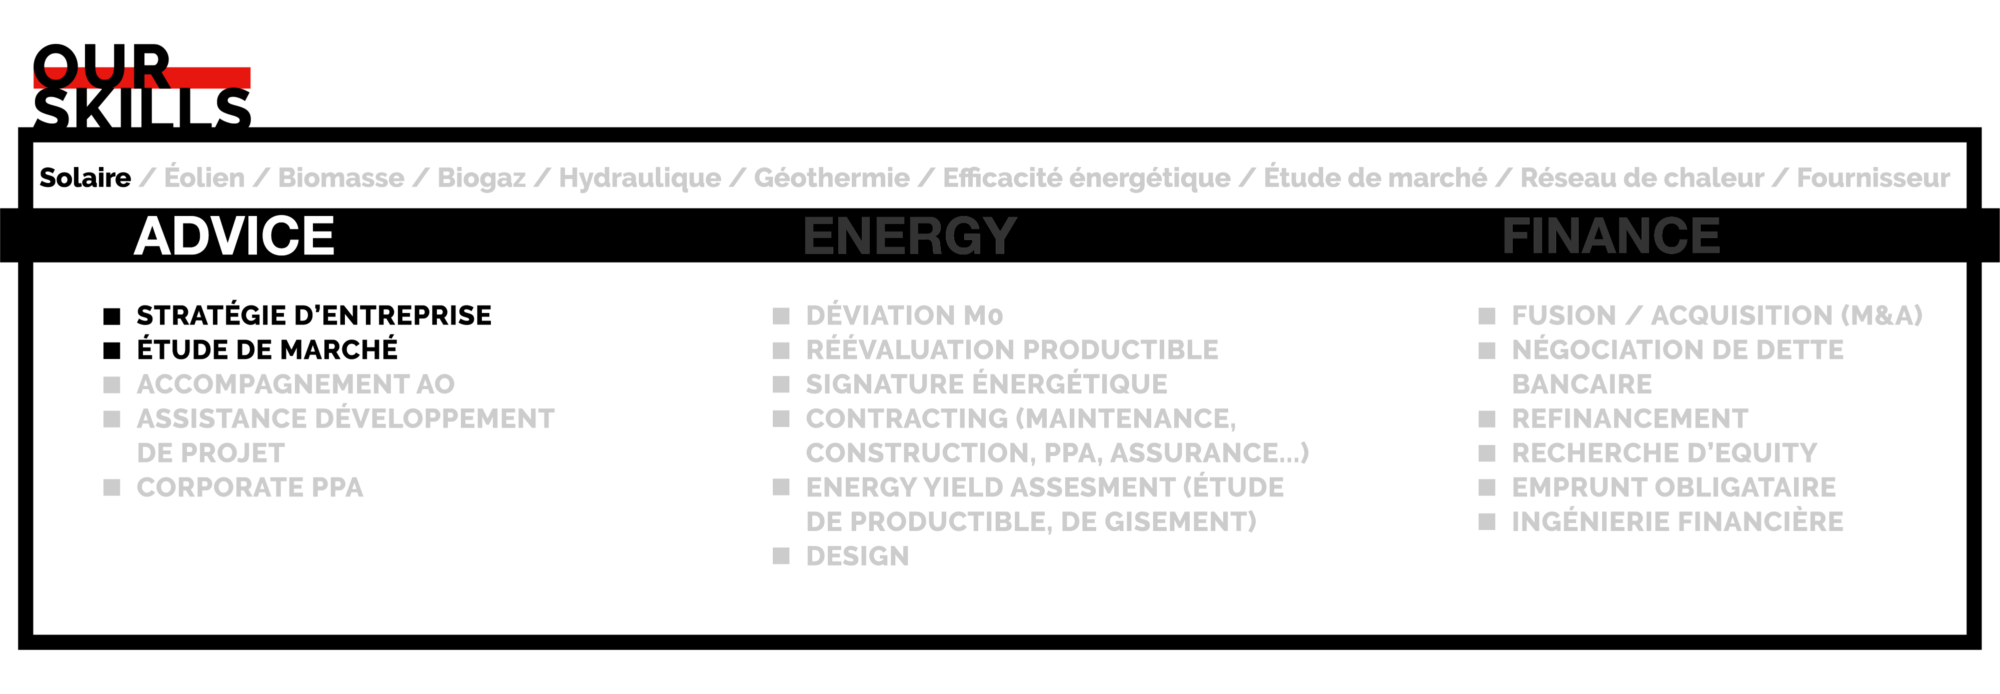 skills-groupe-bpce-boite-outils